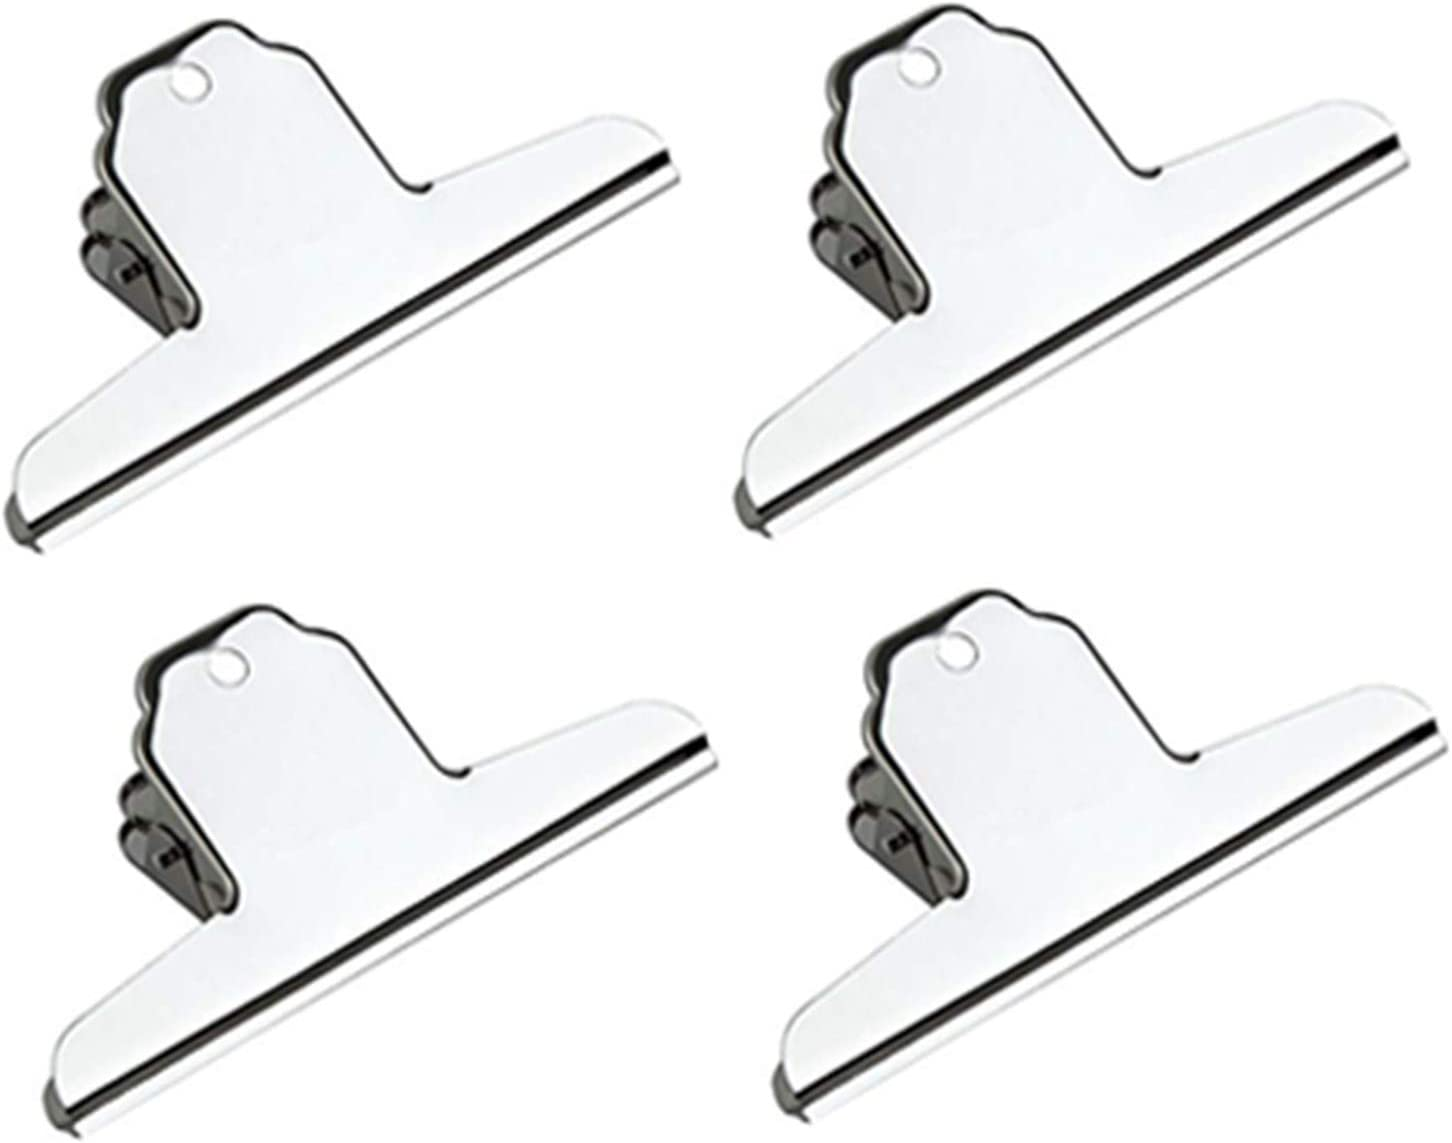 XMHF 7inch Large Bulldog Clip, Silver Stainless Steel File Money Binder Clips Clamps Metal Food Bag Paper Clips for Home Office School Paper Supplies 4Pack